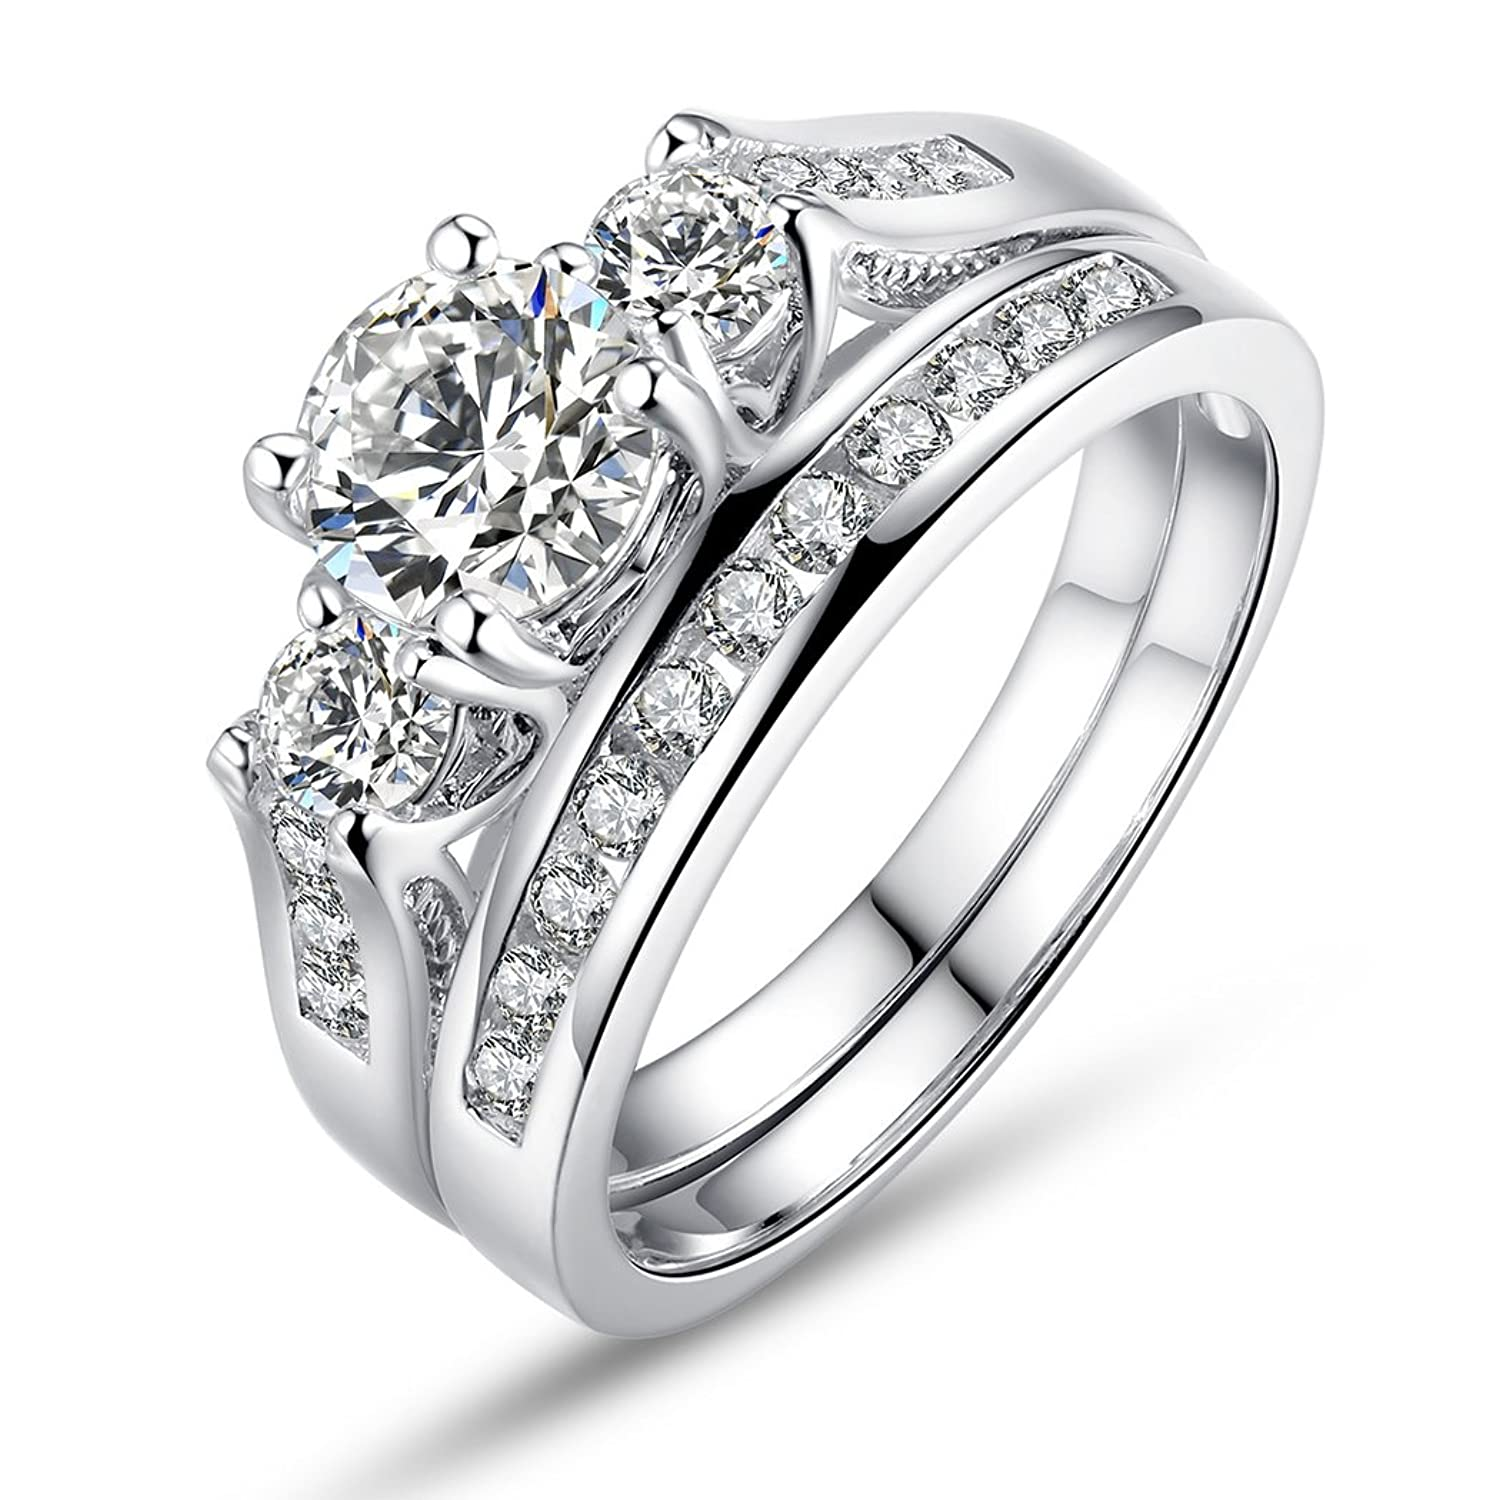 rings as new big wedding stone bands topic